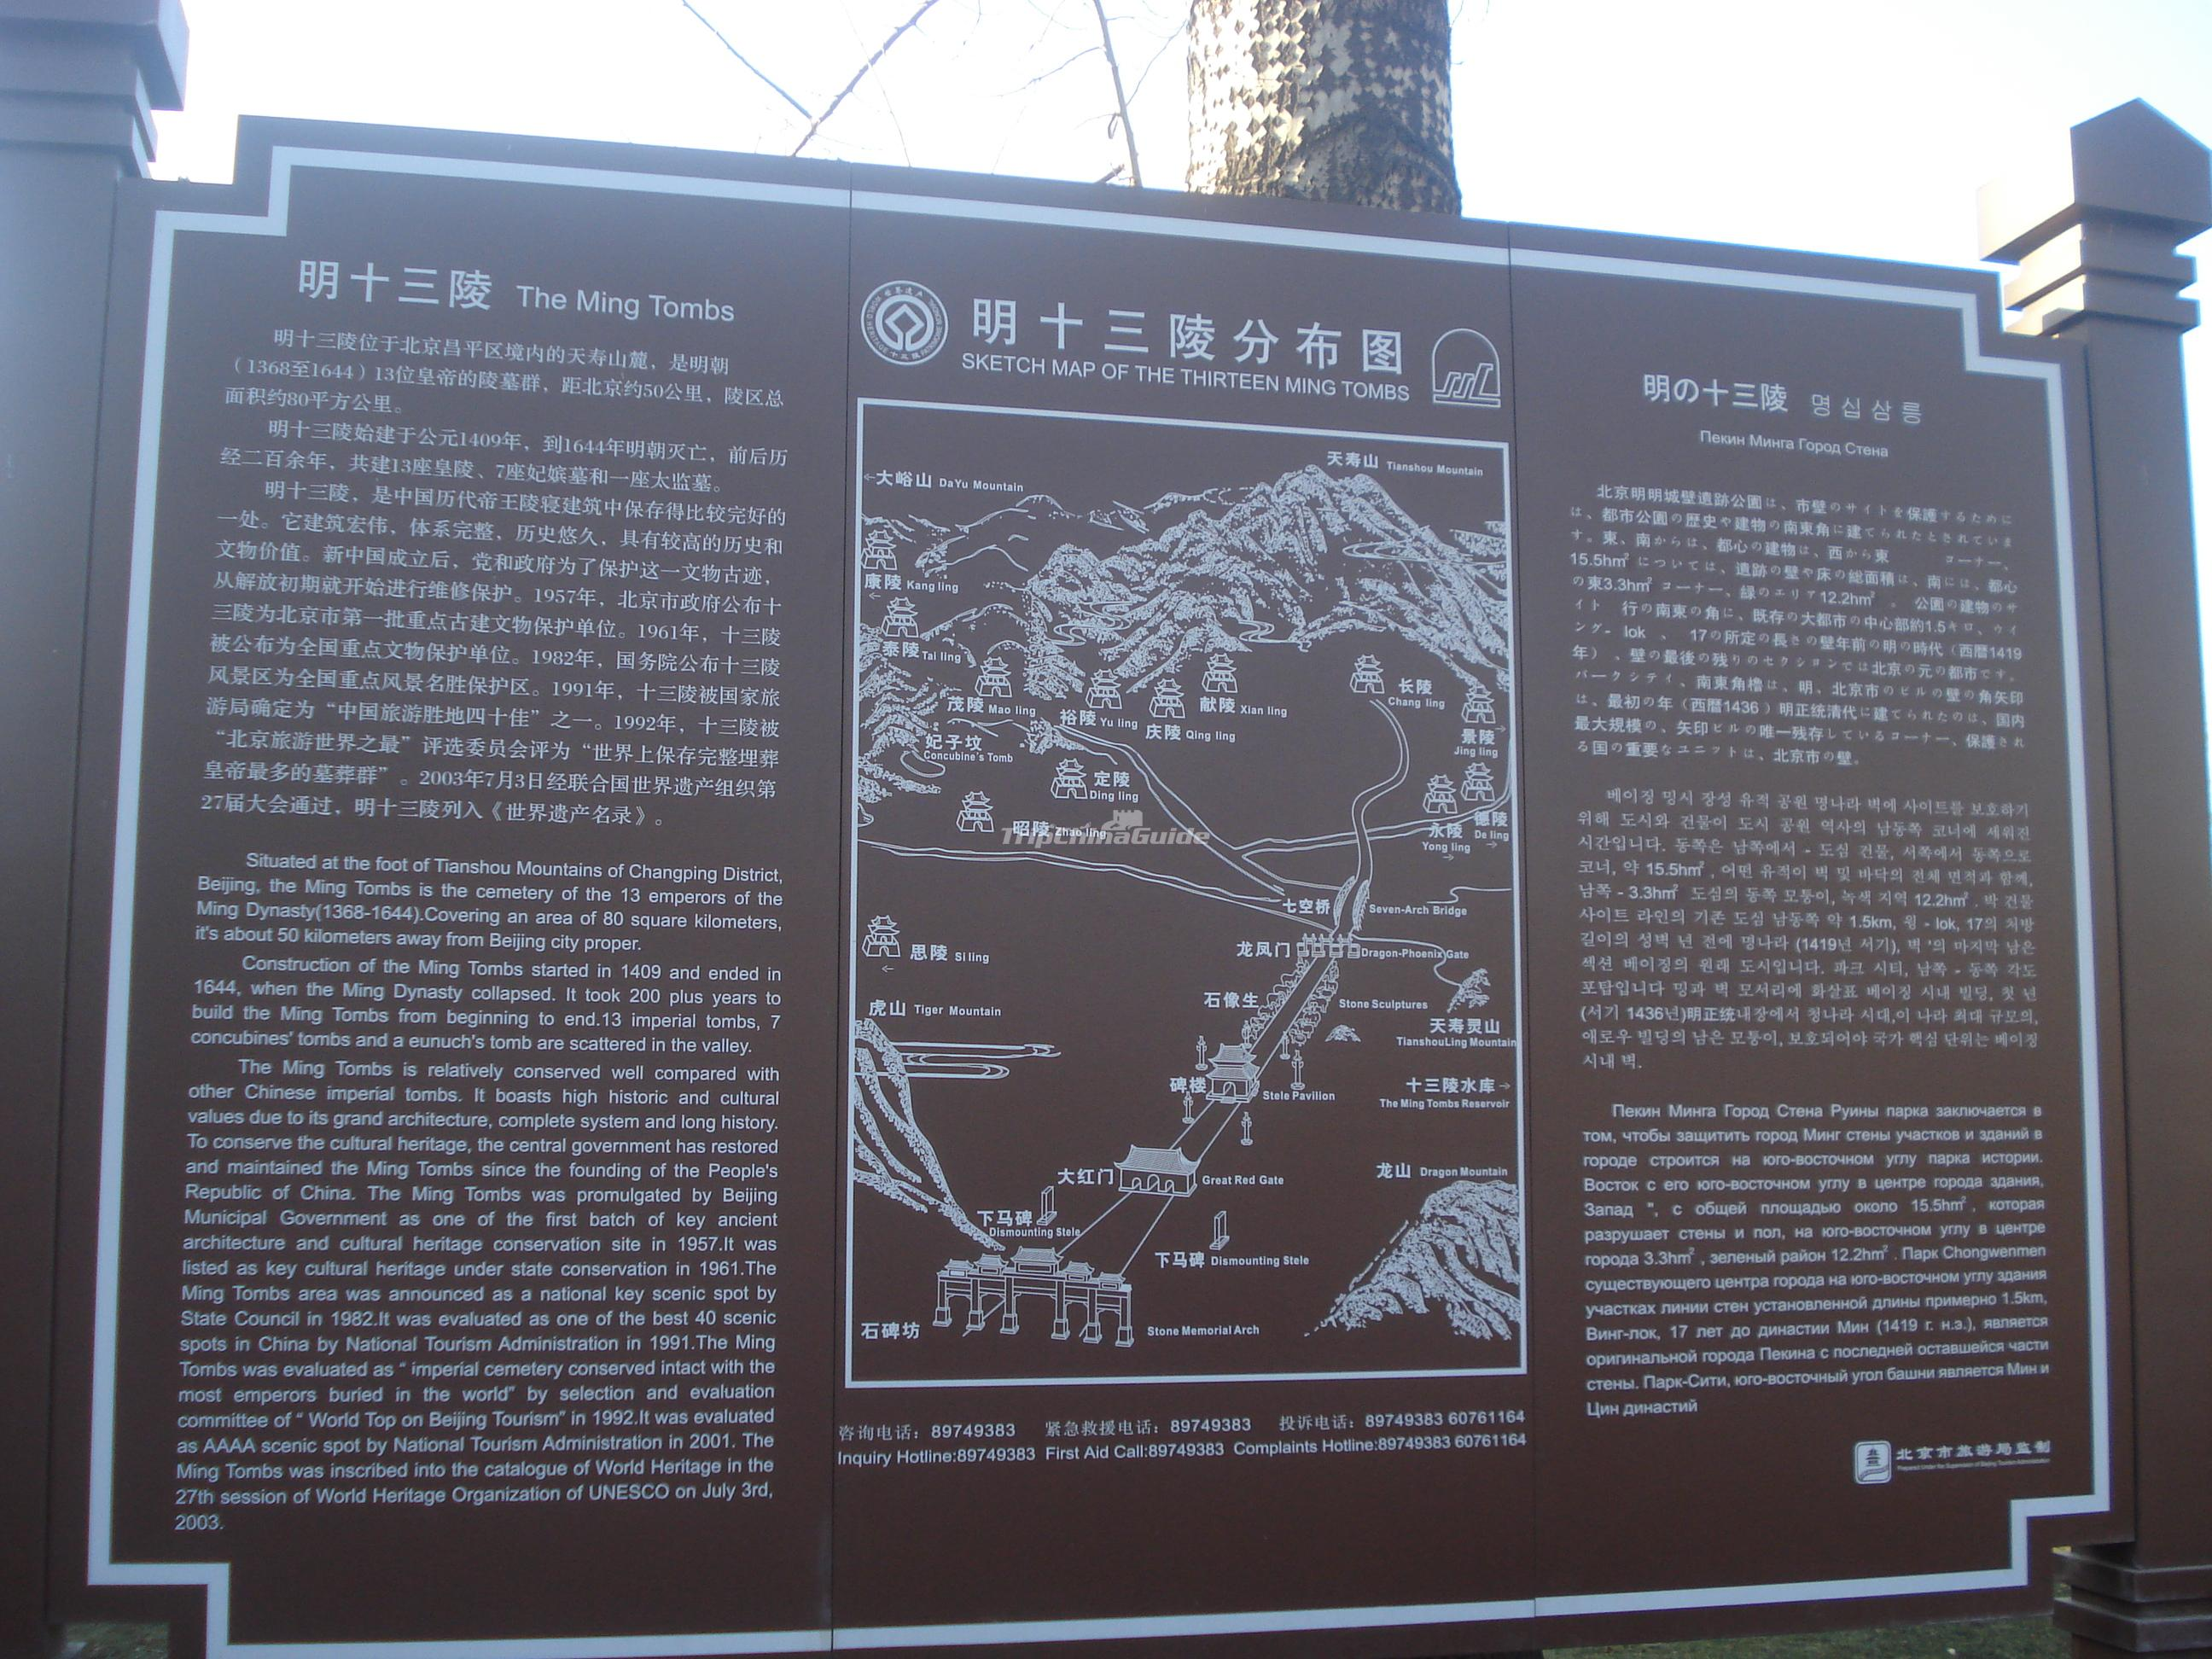 Sketch Map of the Thirteen Ming Tombs